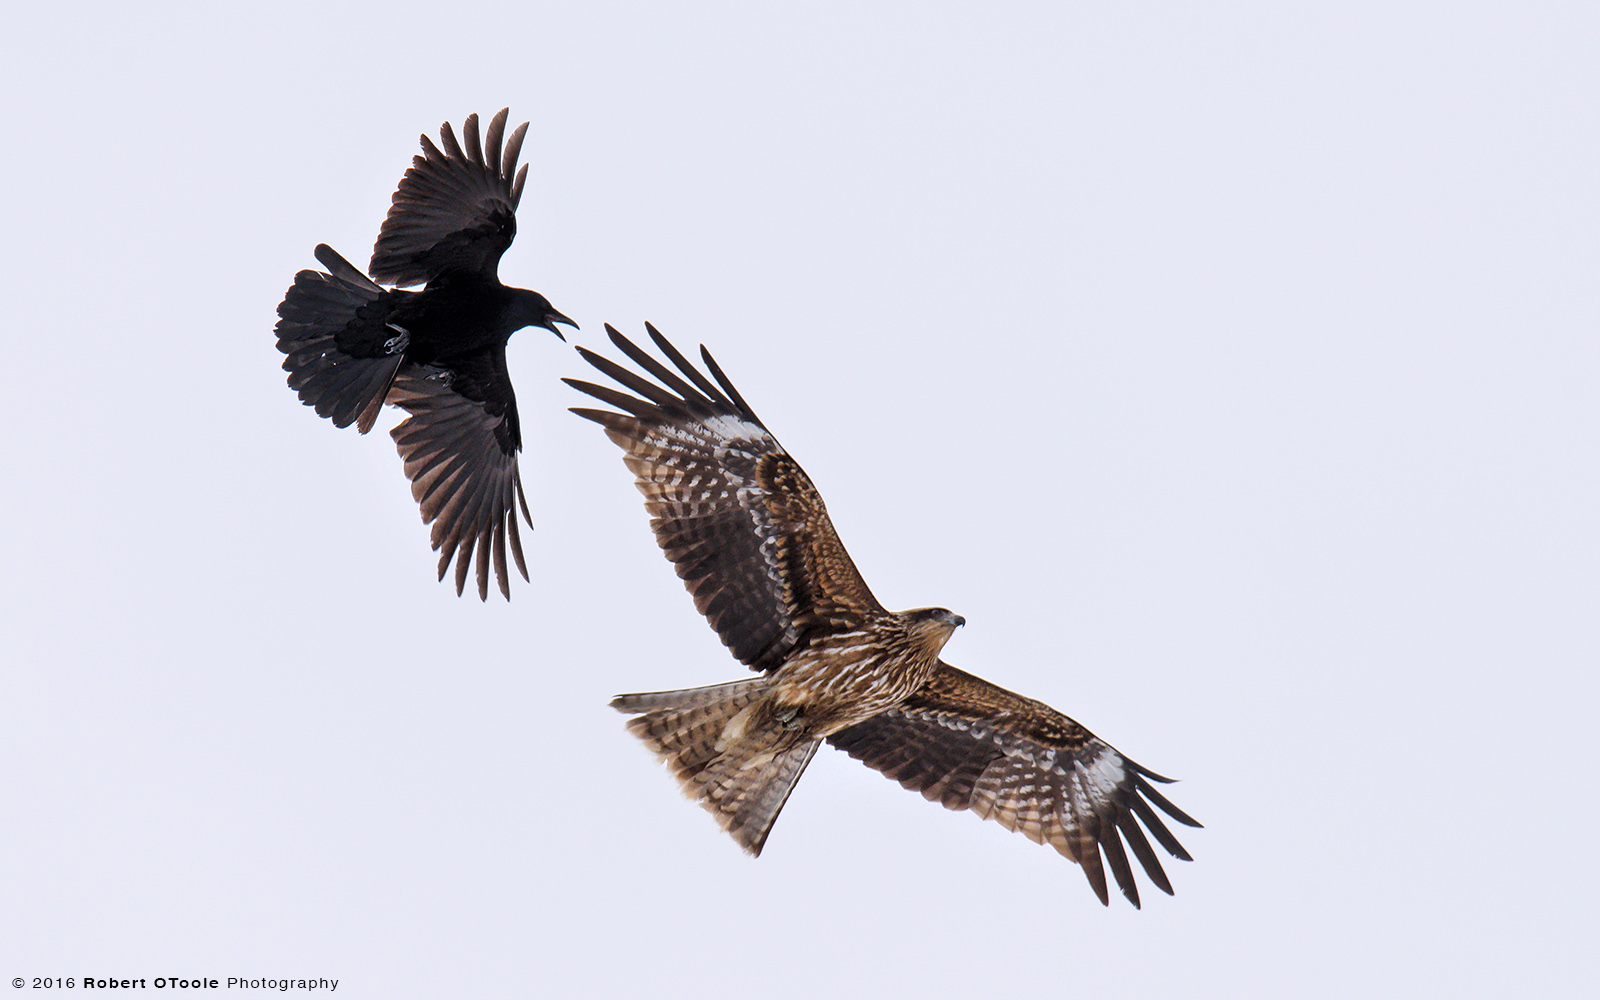 Kite Being Harassed by a Crow